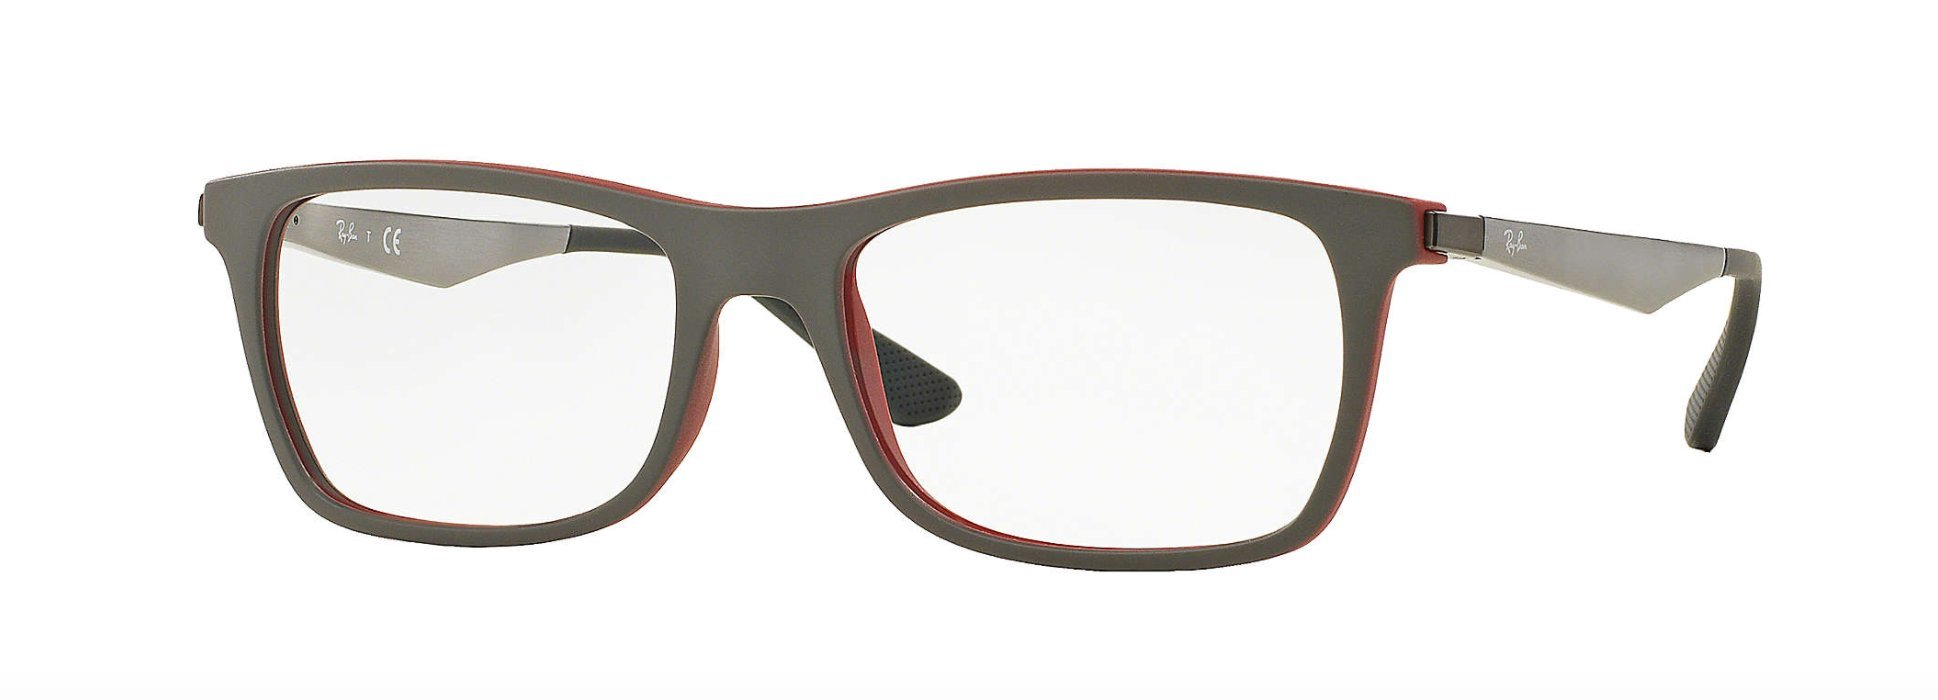 Ray Ban Eyeglasses Rx 7062f 5576 Top Grey On Matte Bordeaux, Size 55-18-145 by Ray-Ban